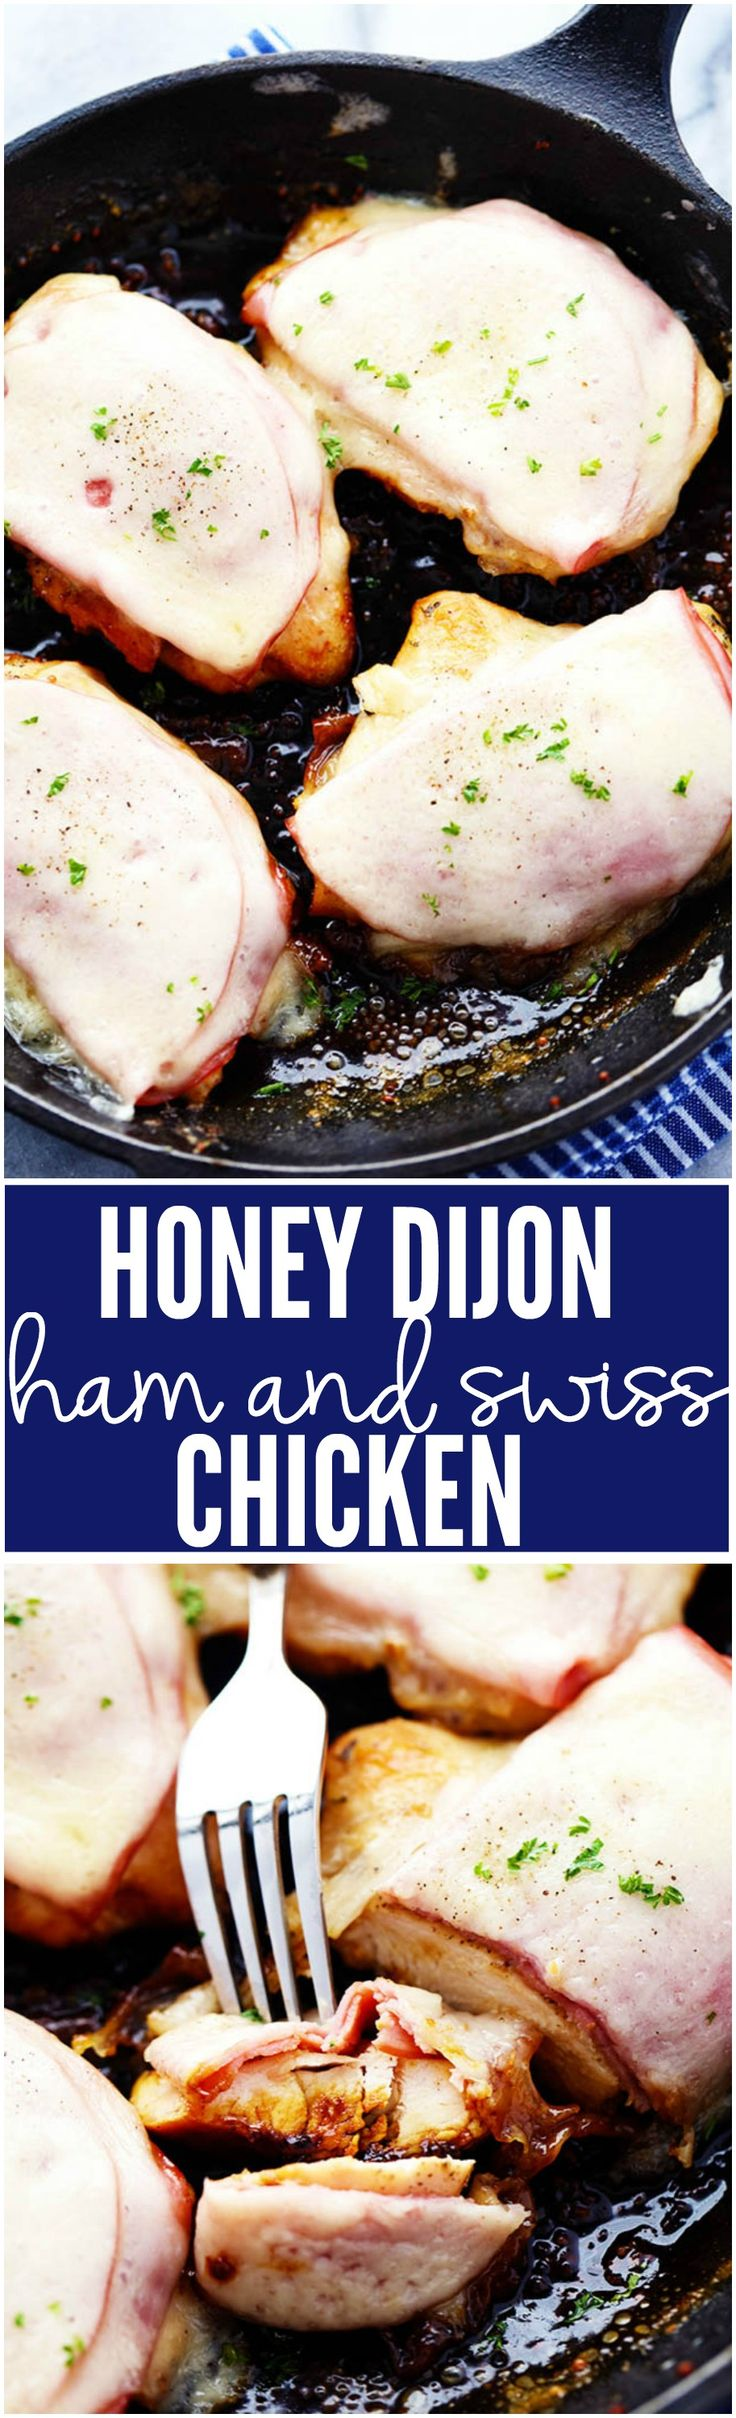 Honey Dijon Ham and Swiss Chicken is a quick and easy 30 minute meal! It is coated in a delicious honey dijon sauce and topped with ham and melty swiss cheese!